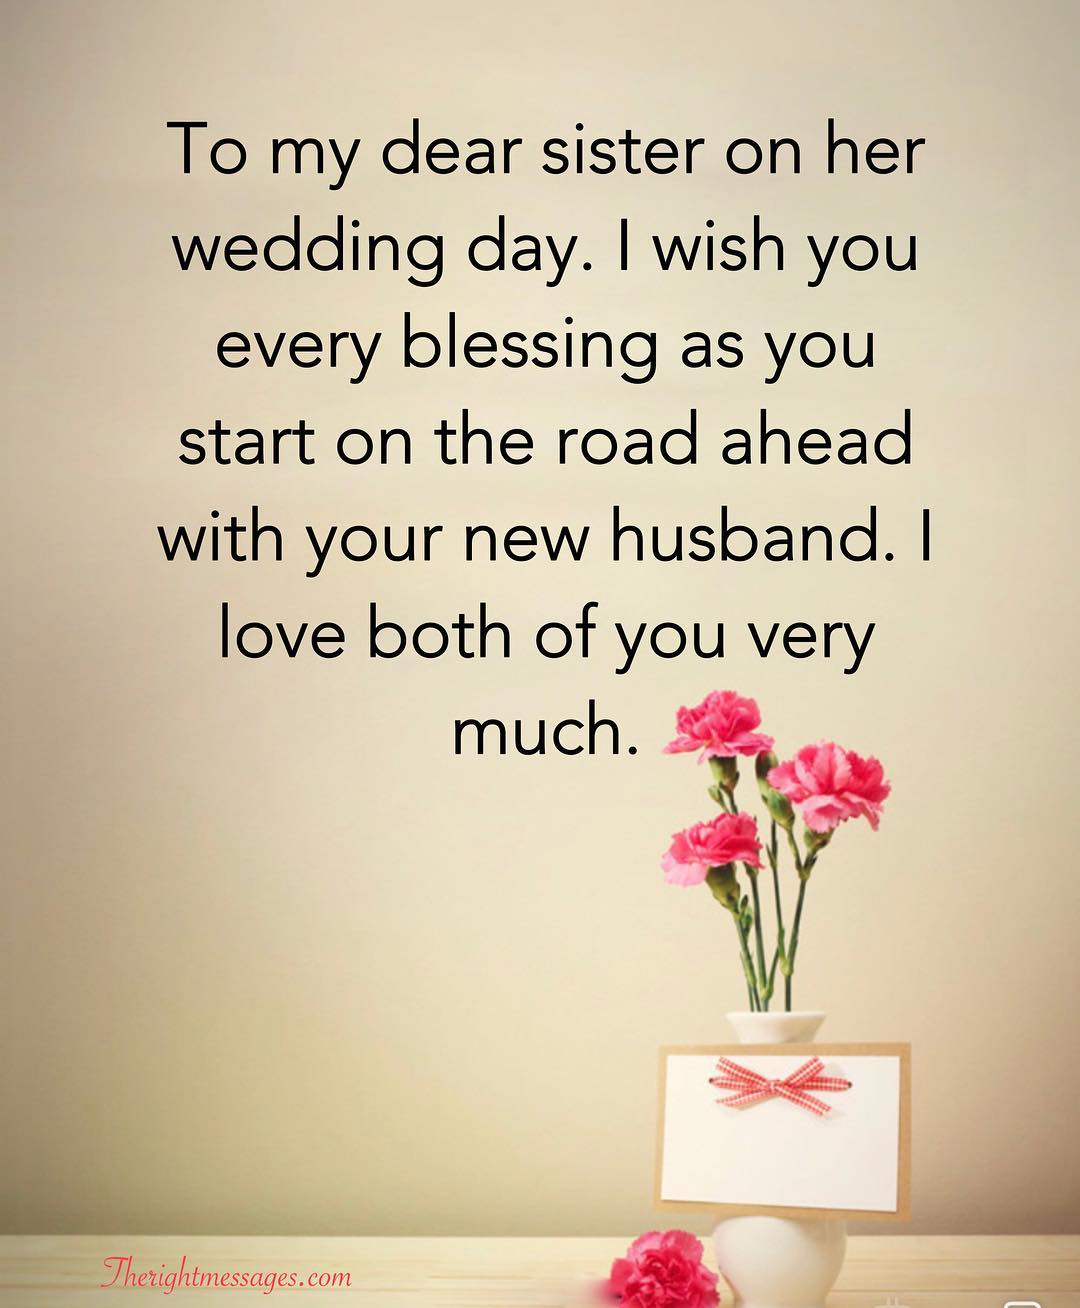 My Sister Marriage Quotes: Short And Long Wedding Wishes For Sister